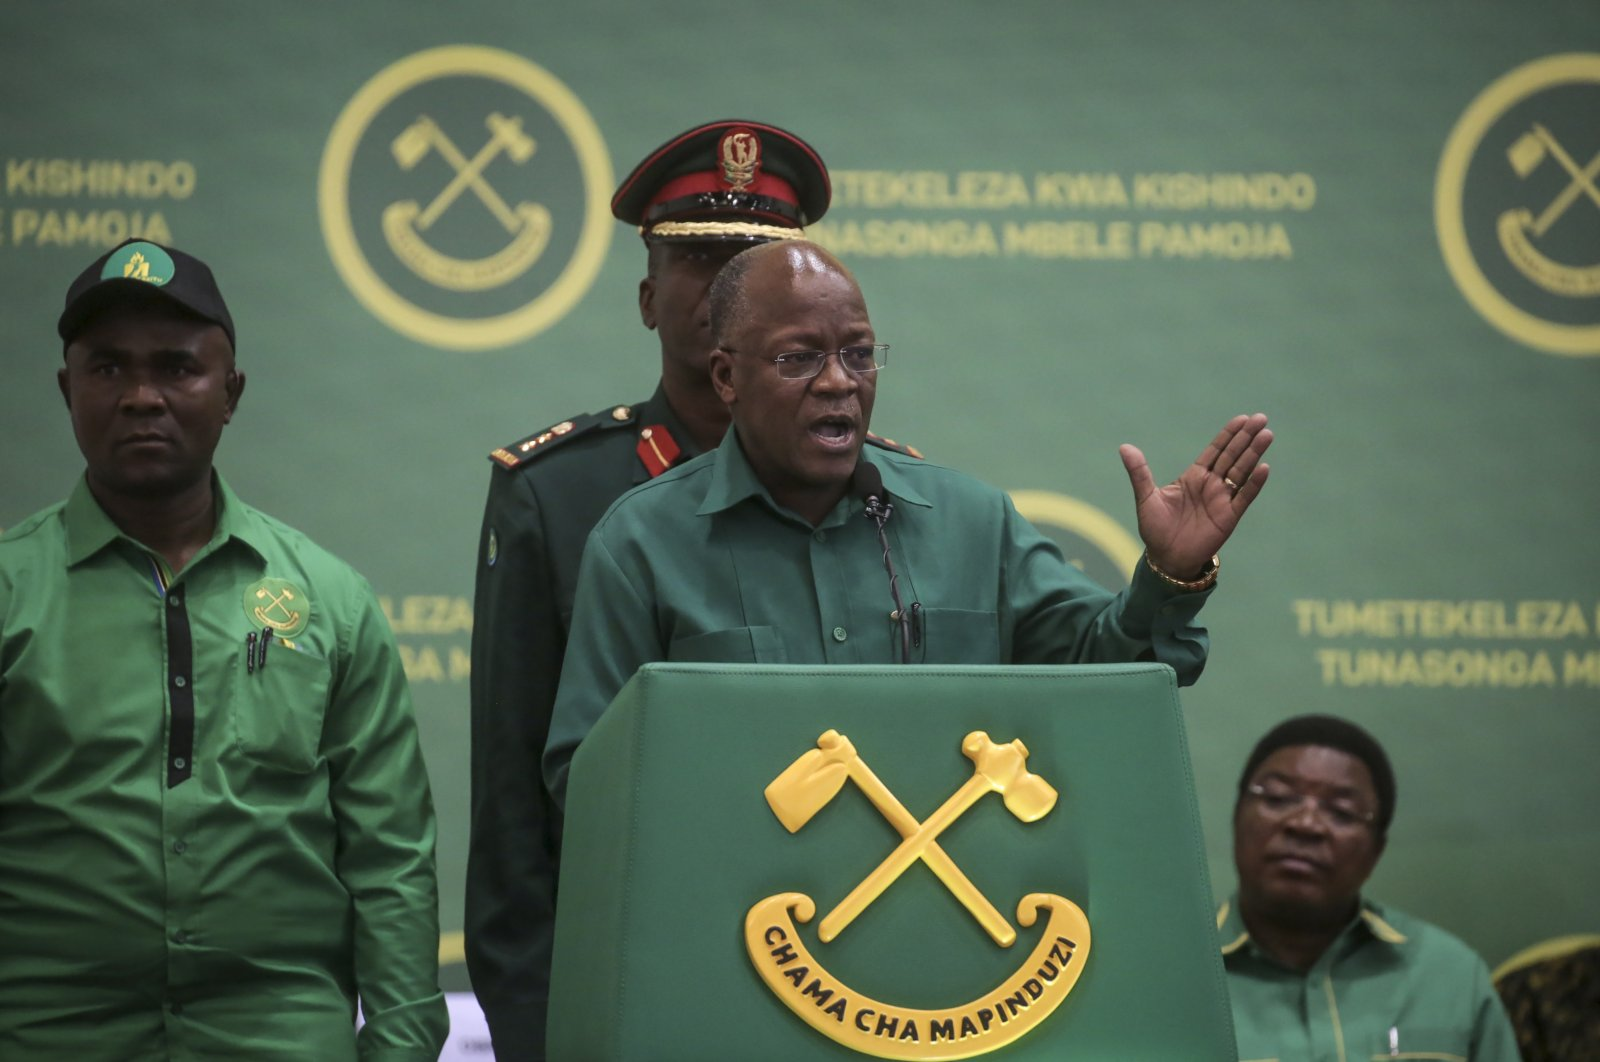 Tanzania's President John Magufuli speaks at the national congress of his ruling Chama cha Mapinduzi (CCM) party in Dodoma, Tanzania, July 11, 2020. (AP Photo)